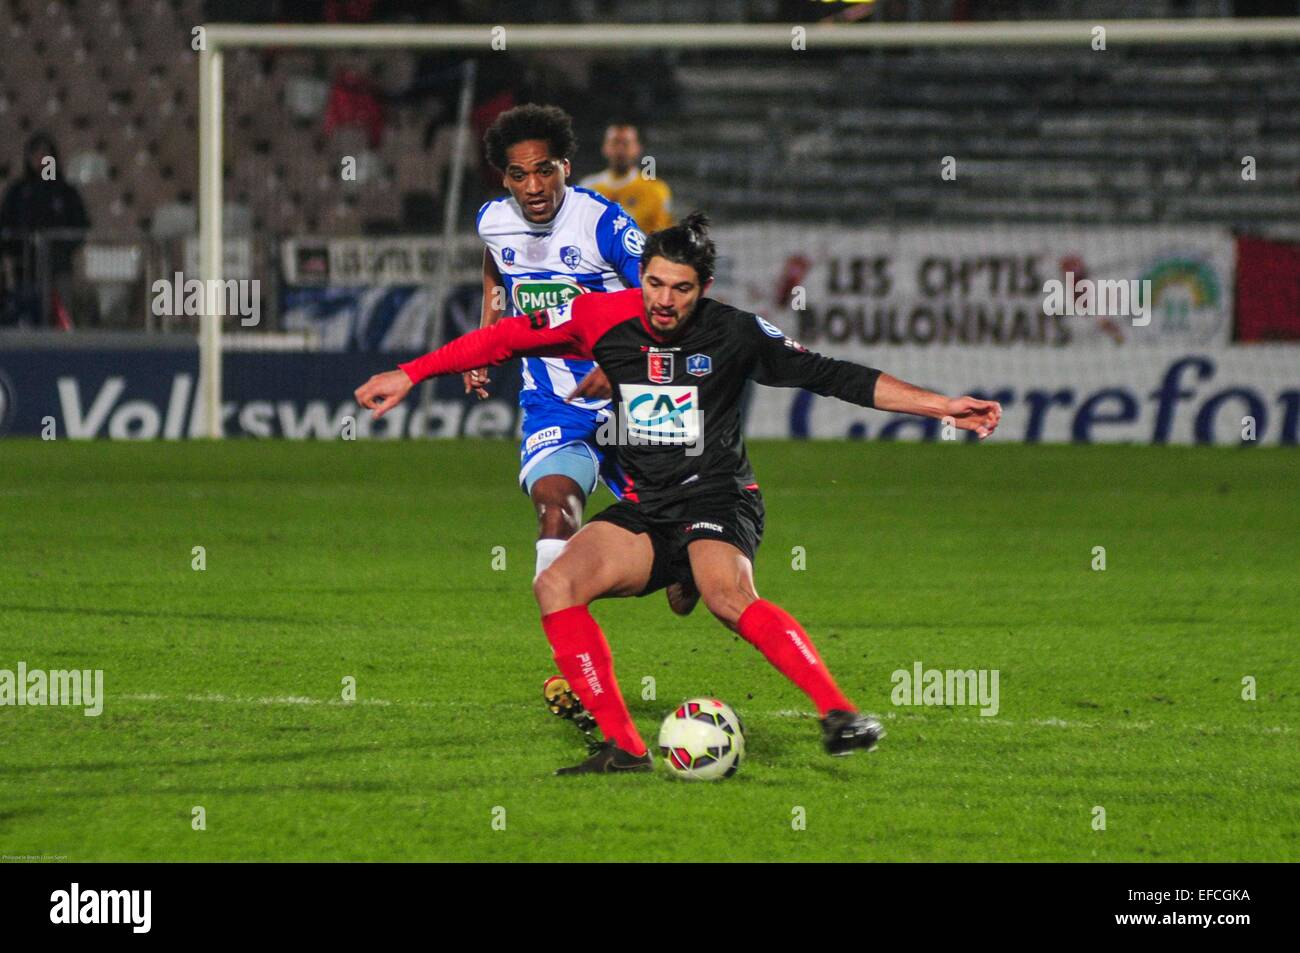 Elohim Rolland - 21.01.2015 - Boulogne/Grenoble - Coupe de France.Photo : Philippe le Brech/Icon Sport - Stock Image